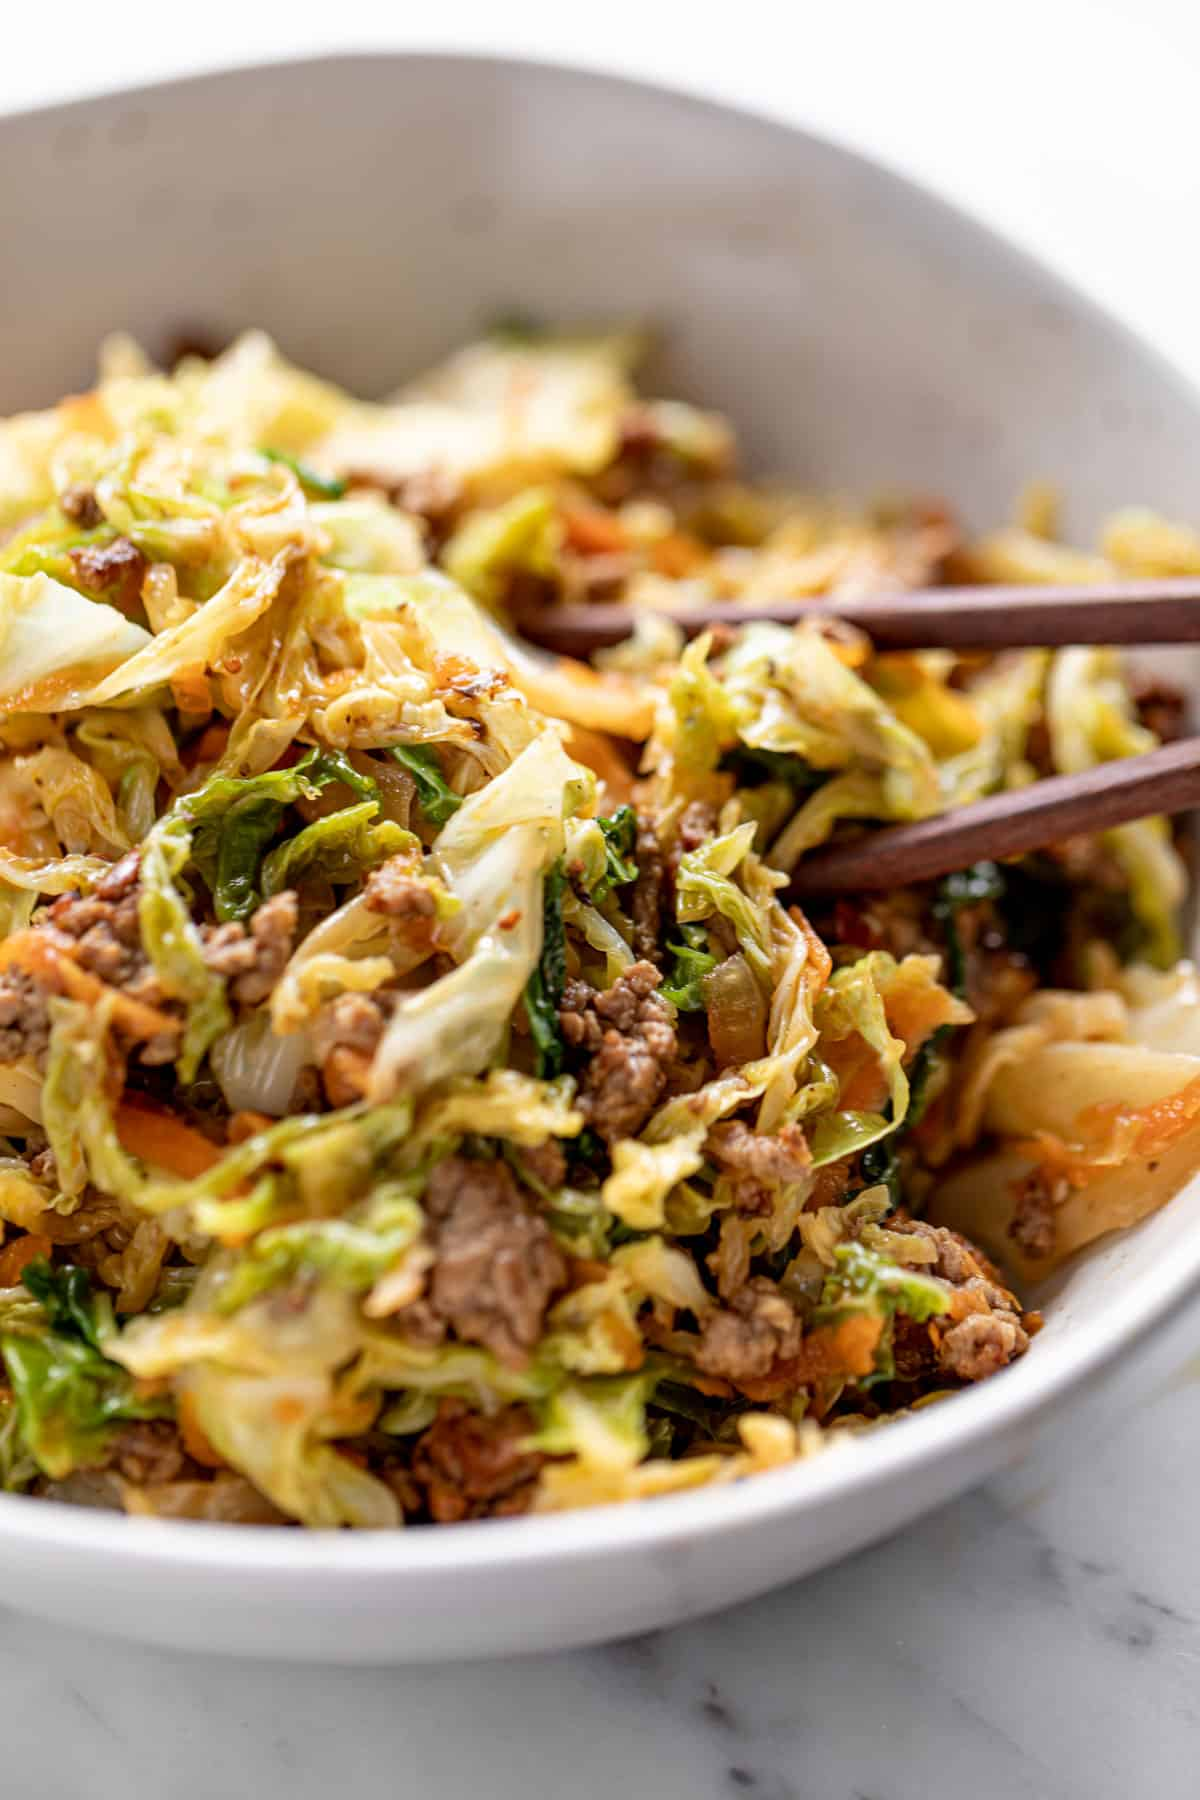 Ground Beef in a bowl with cabbage, served with chop sticks | familycuisine.net